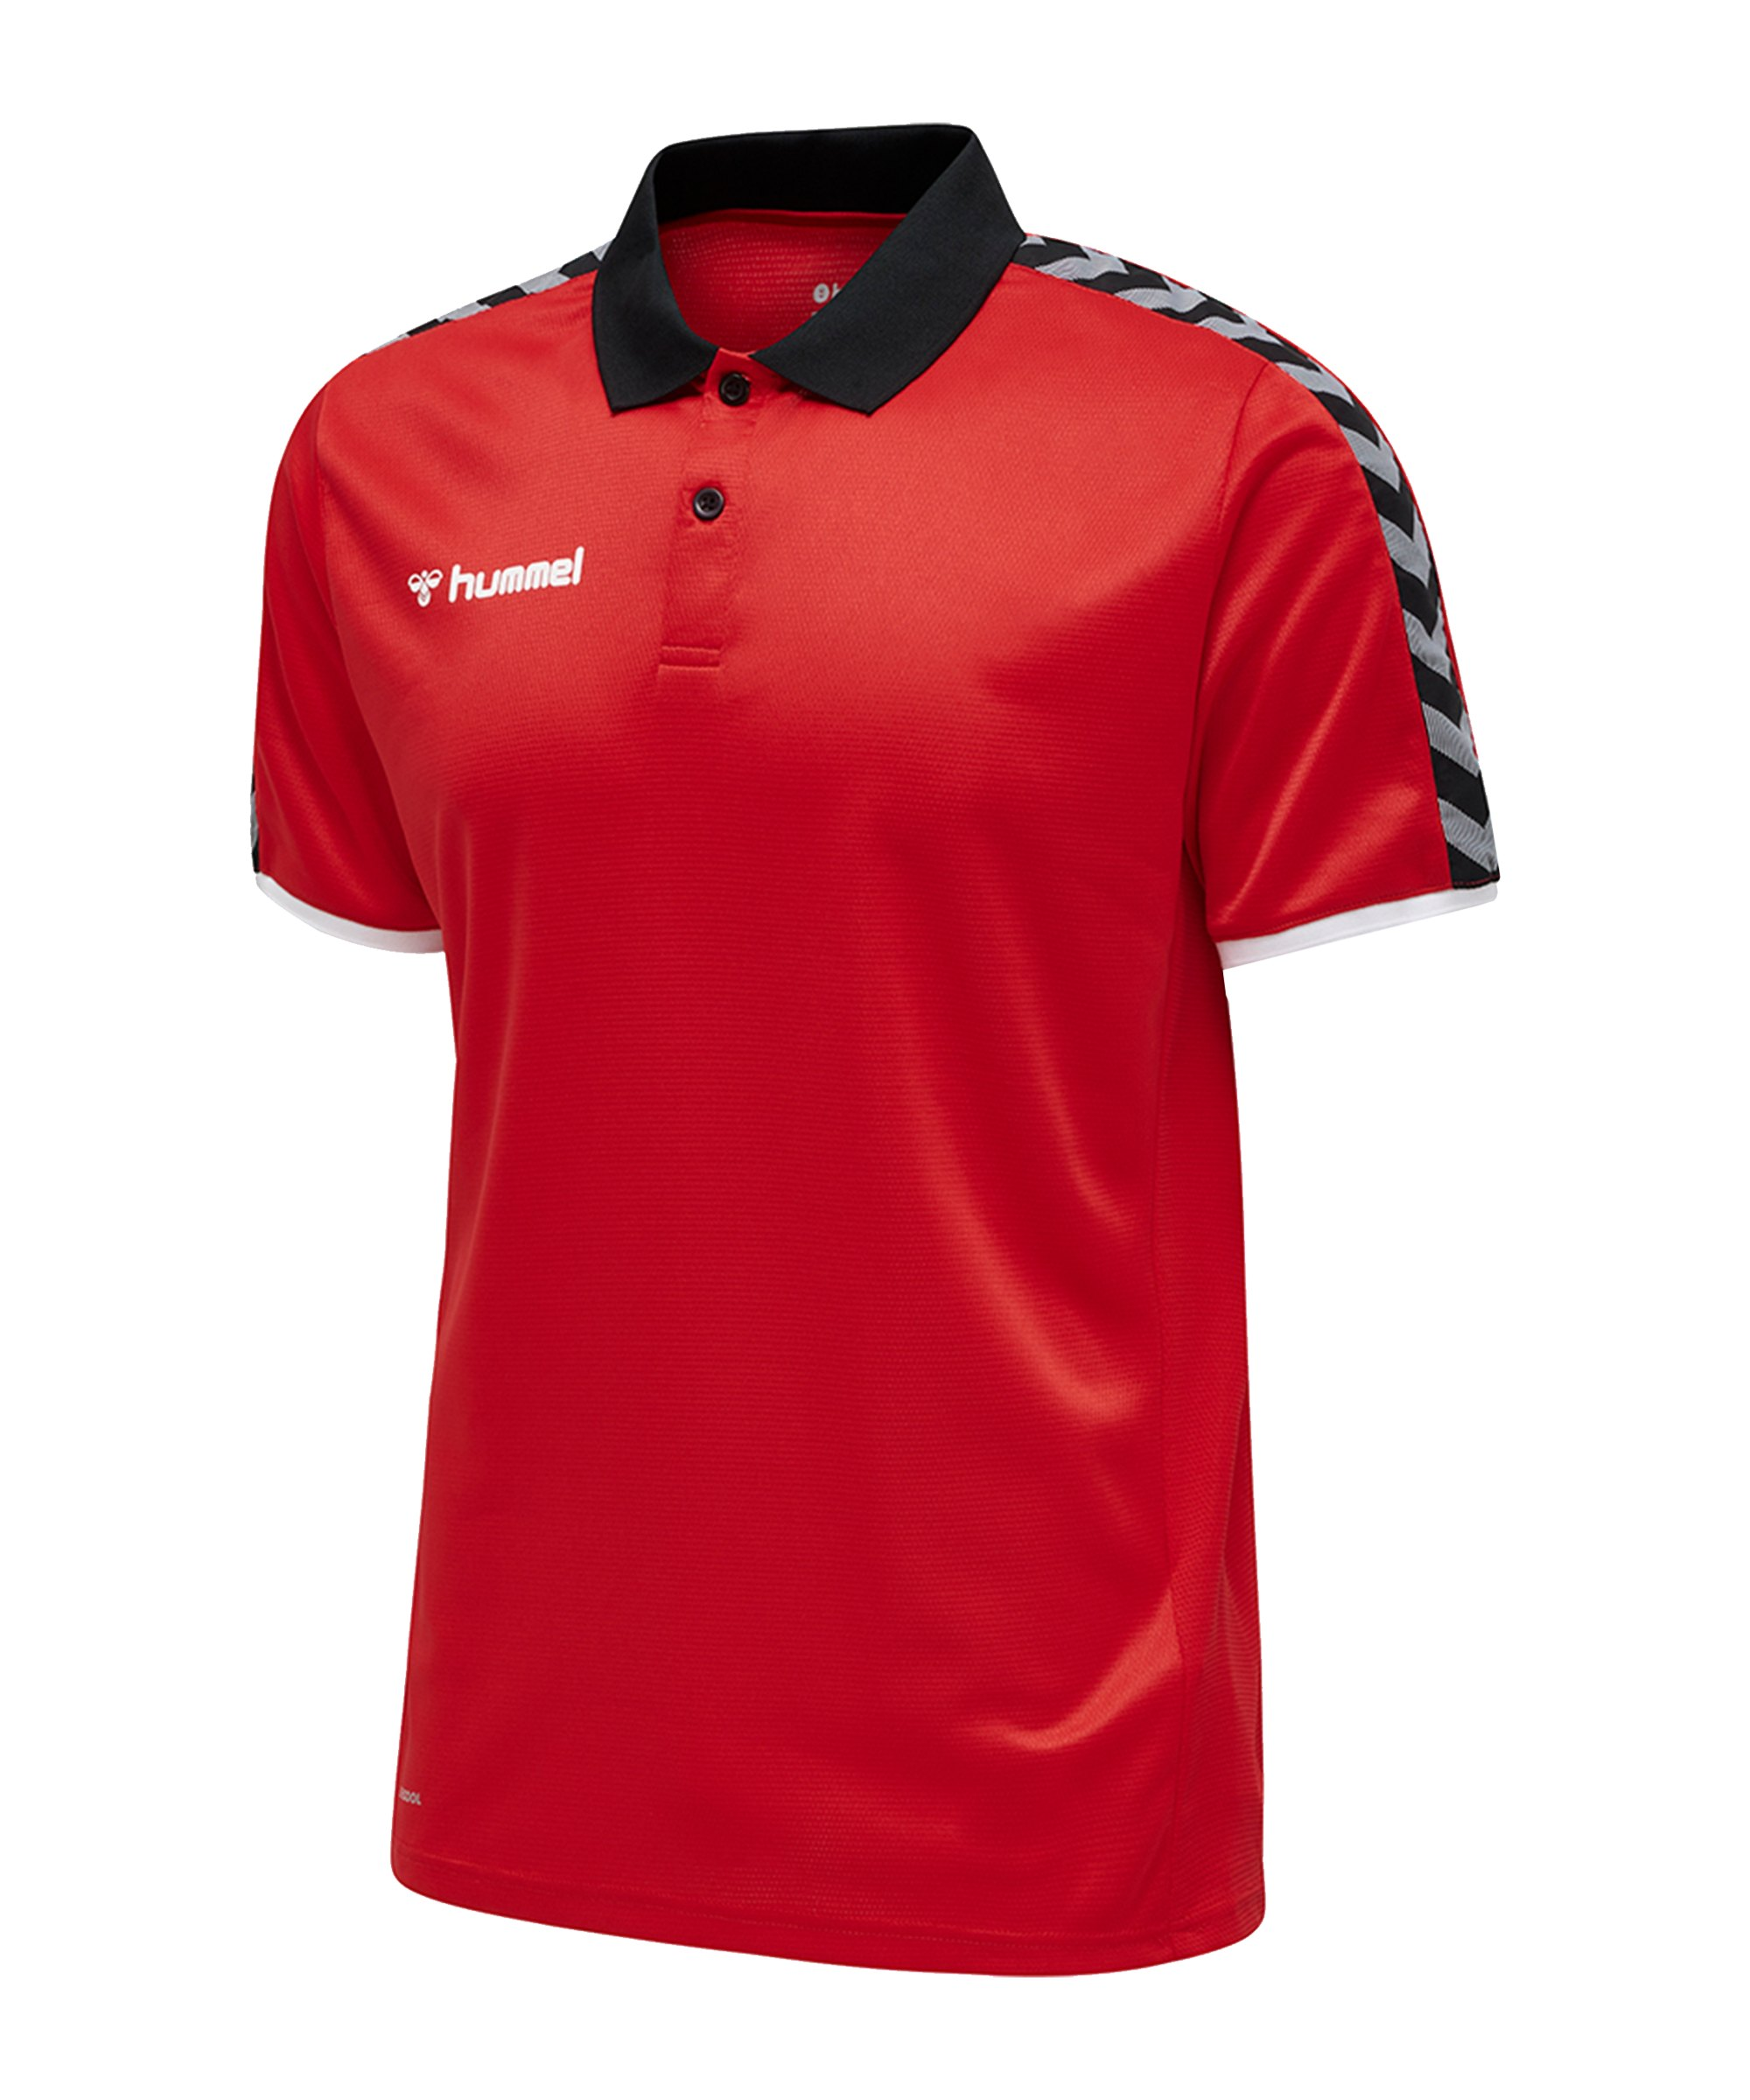 Hummel Authentic Functional Poloshirt F3062 - rot